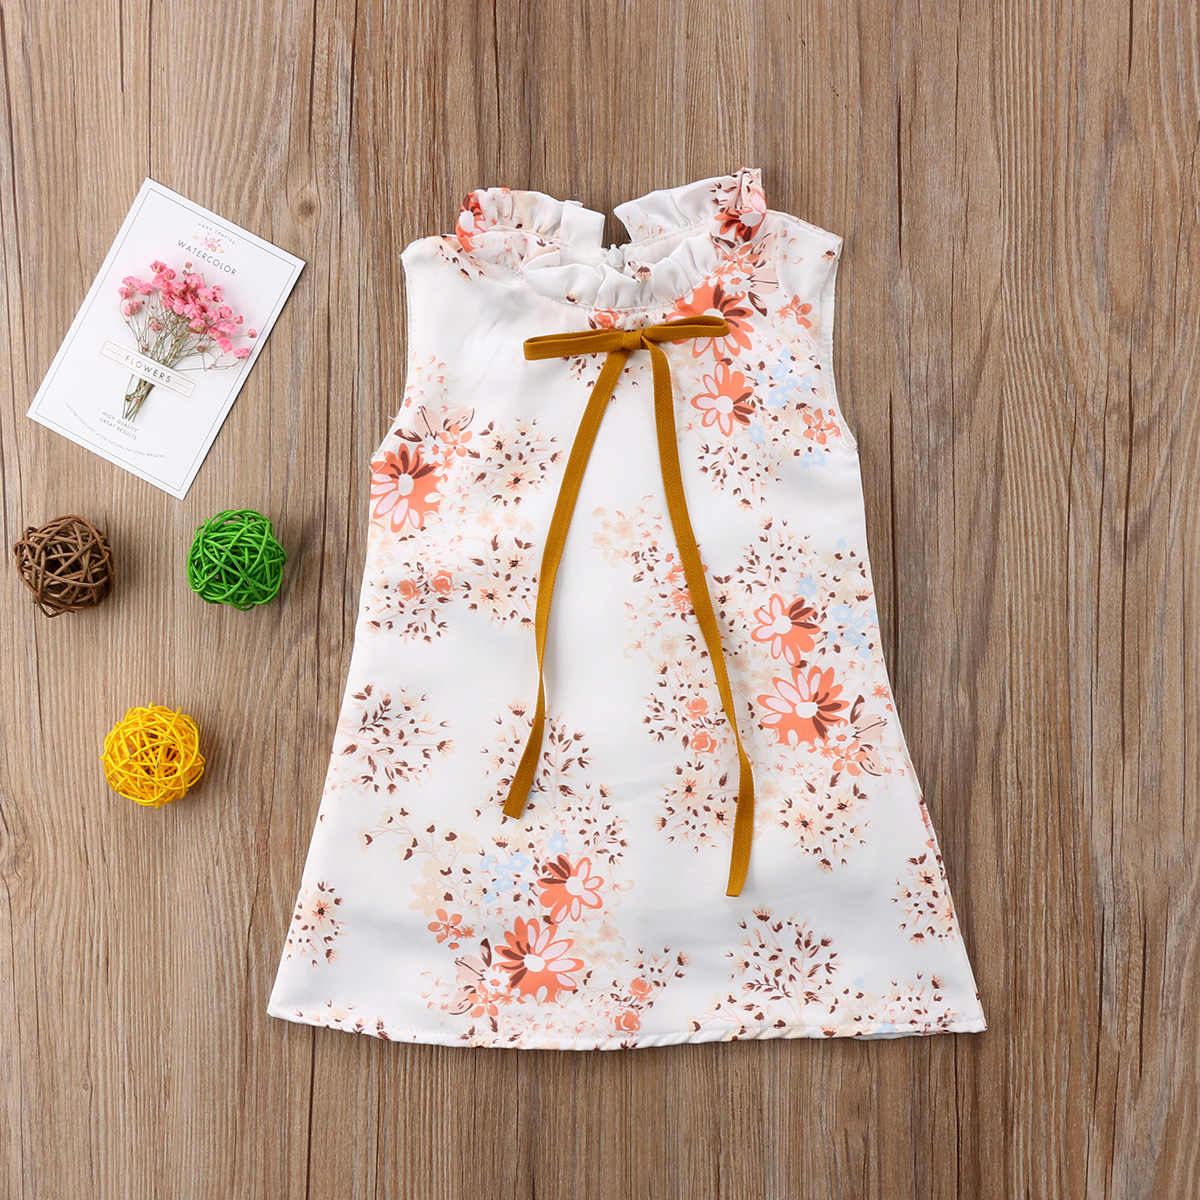 e87db528945 ... Girls Summer Dress Baby Girl Clothes vintage 2018 Brand Children  flowers Princess Clothing Baby Dresses for ...